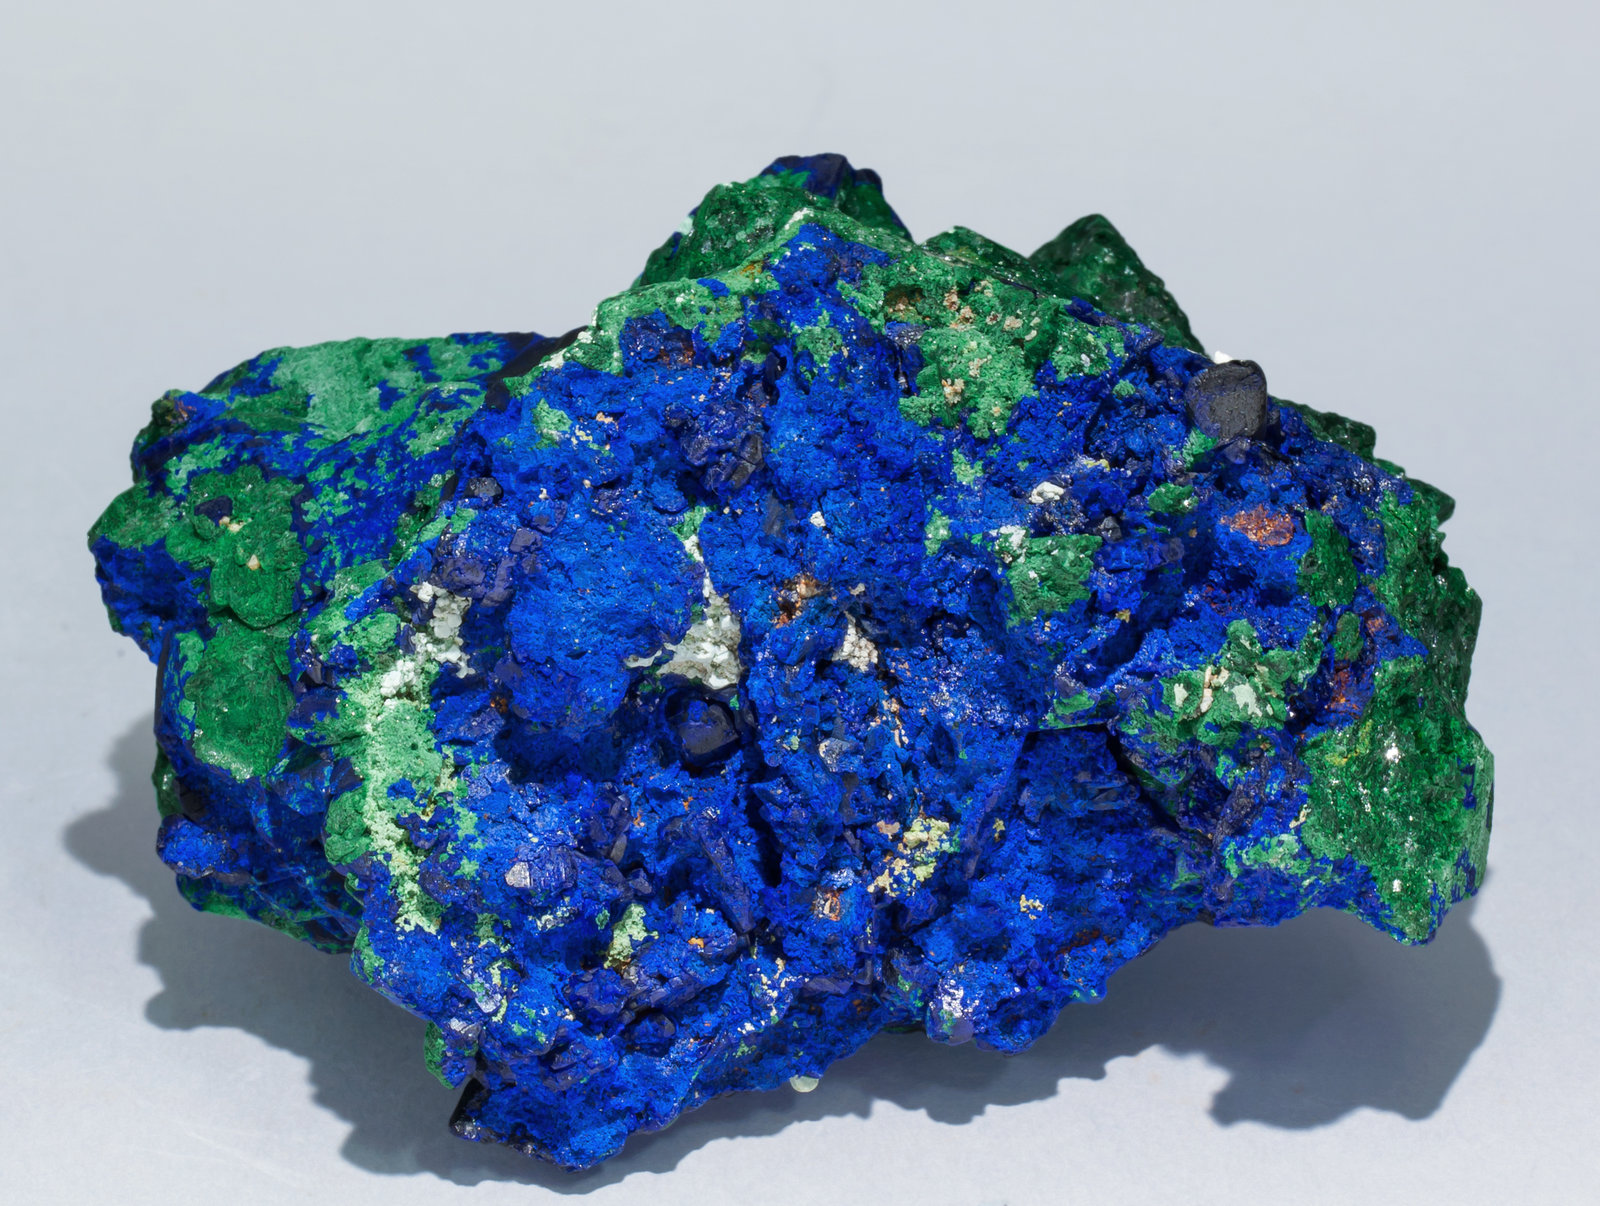 specimens/s_imagesZ7/Malachite-TF89Z7r.jpg